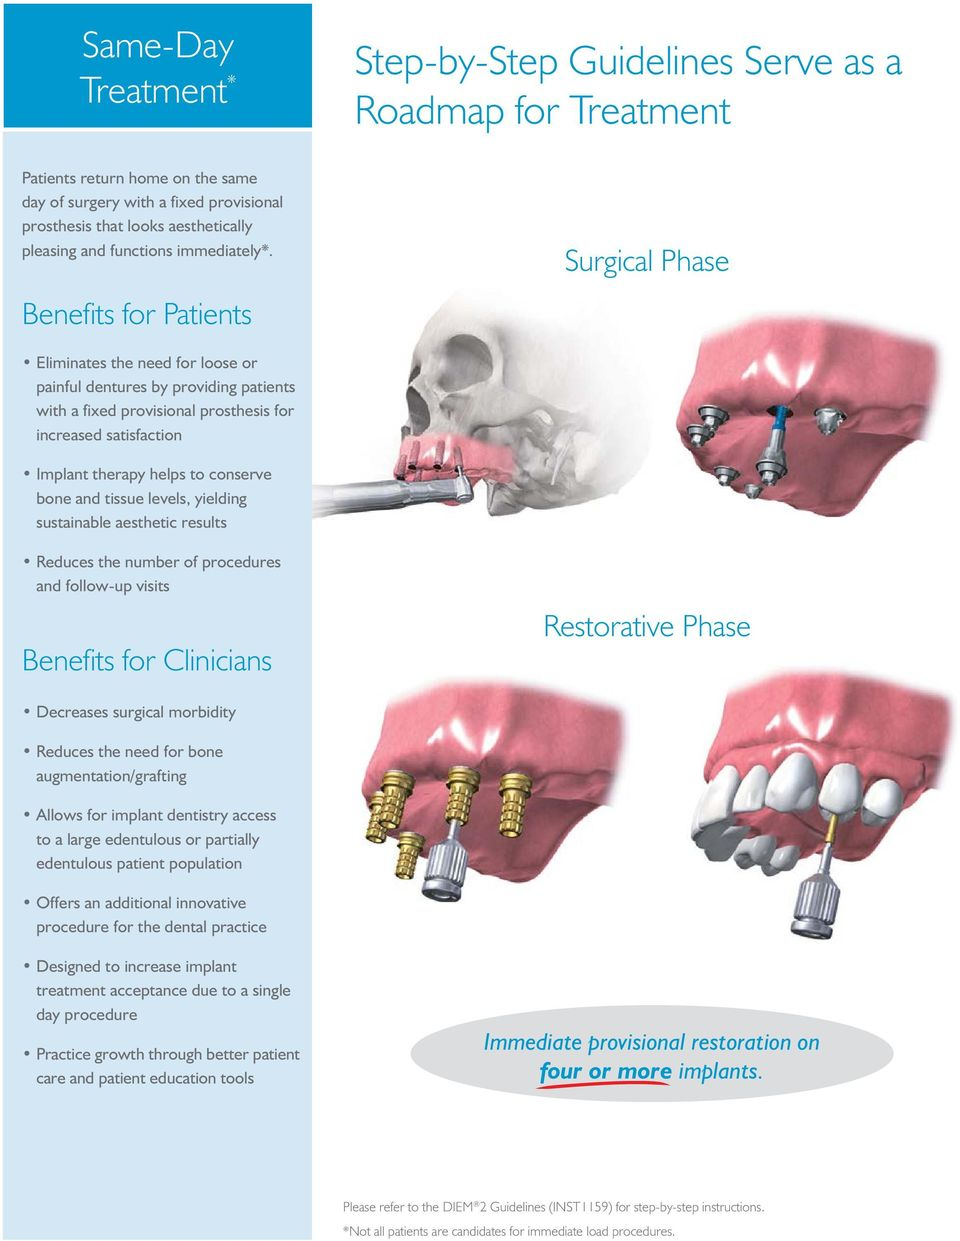 Benefits for Patients Surgical Phase Eliminates the need for loose or painful dentures by providing patients with a fixed provisional prosthesis for increased satisfaction Implant therapy helps to